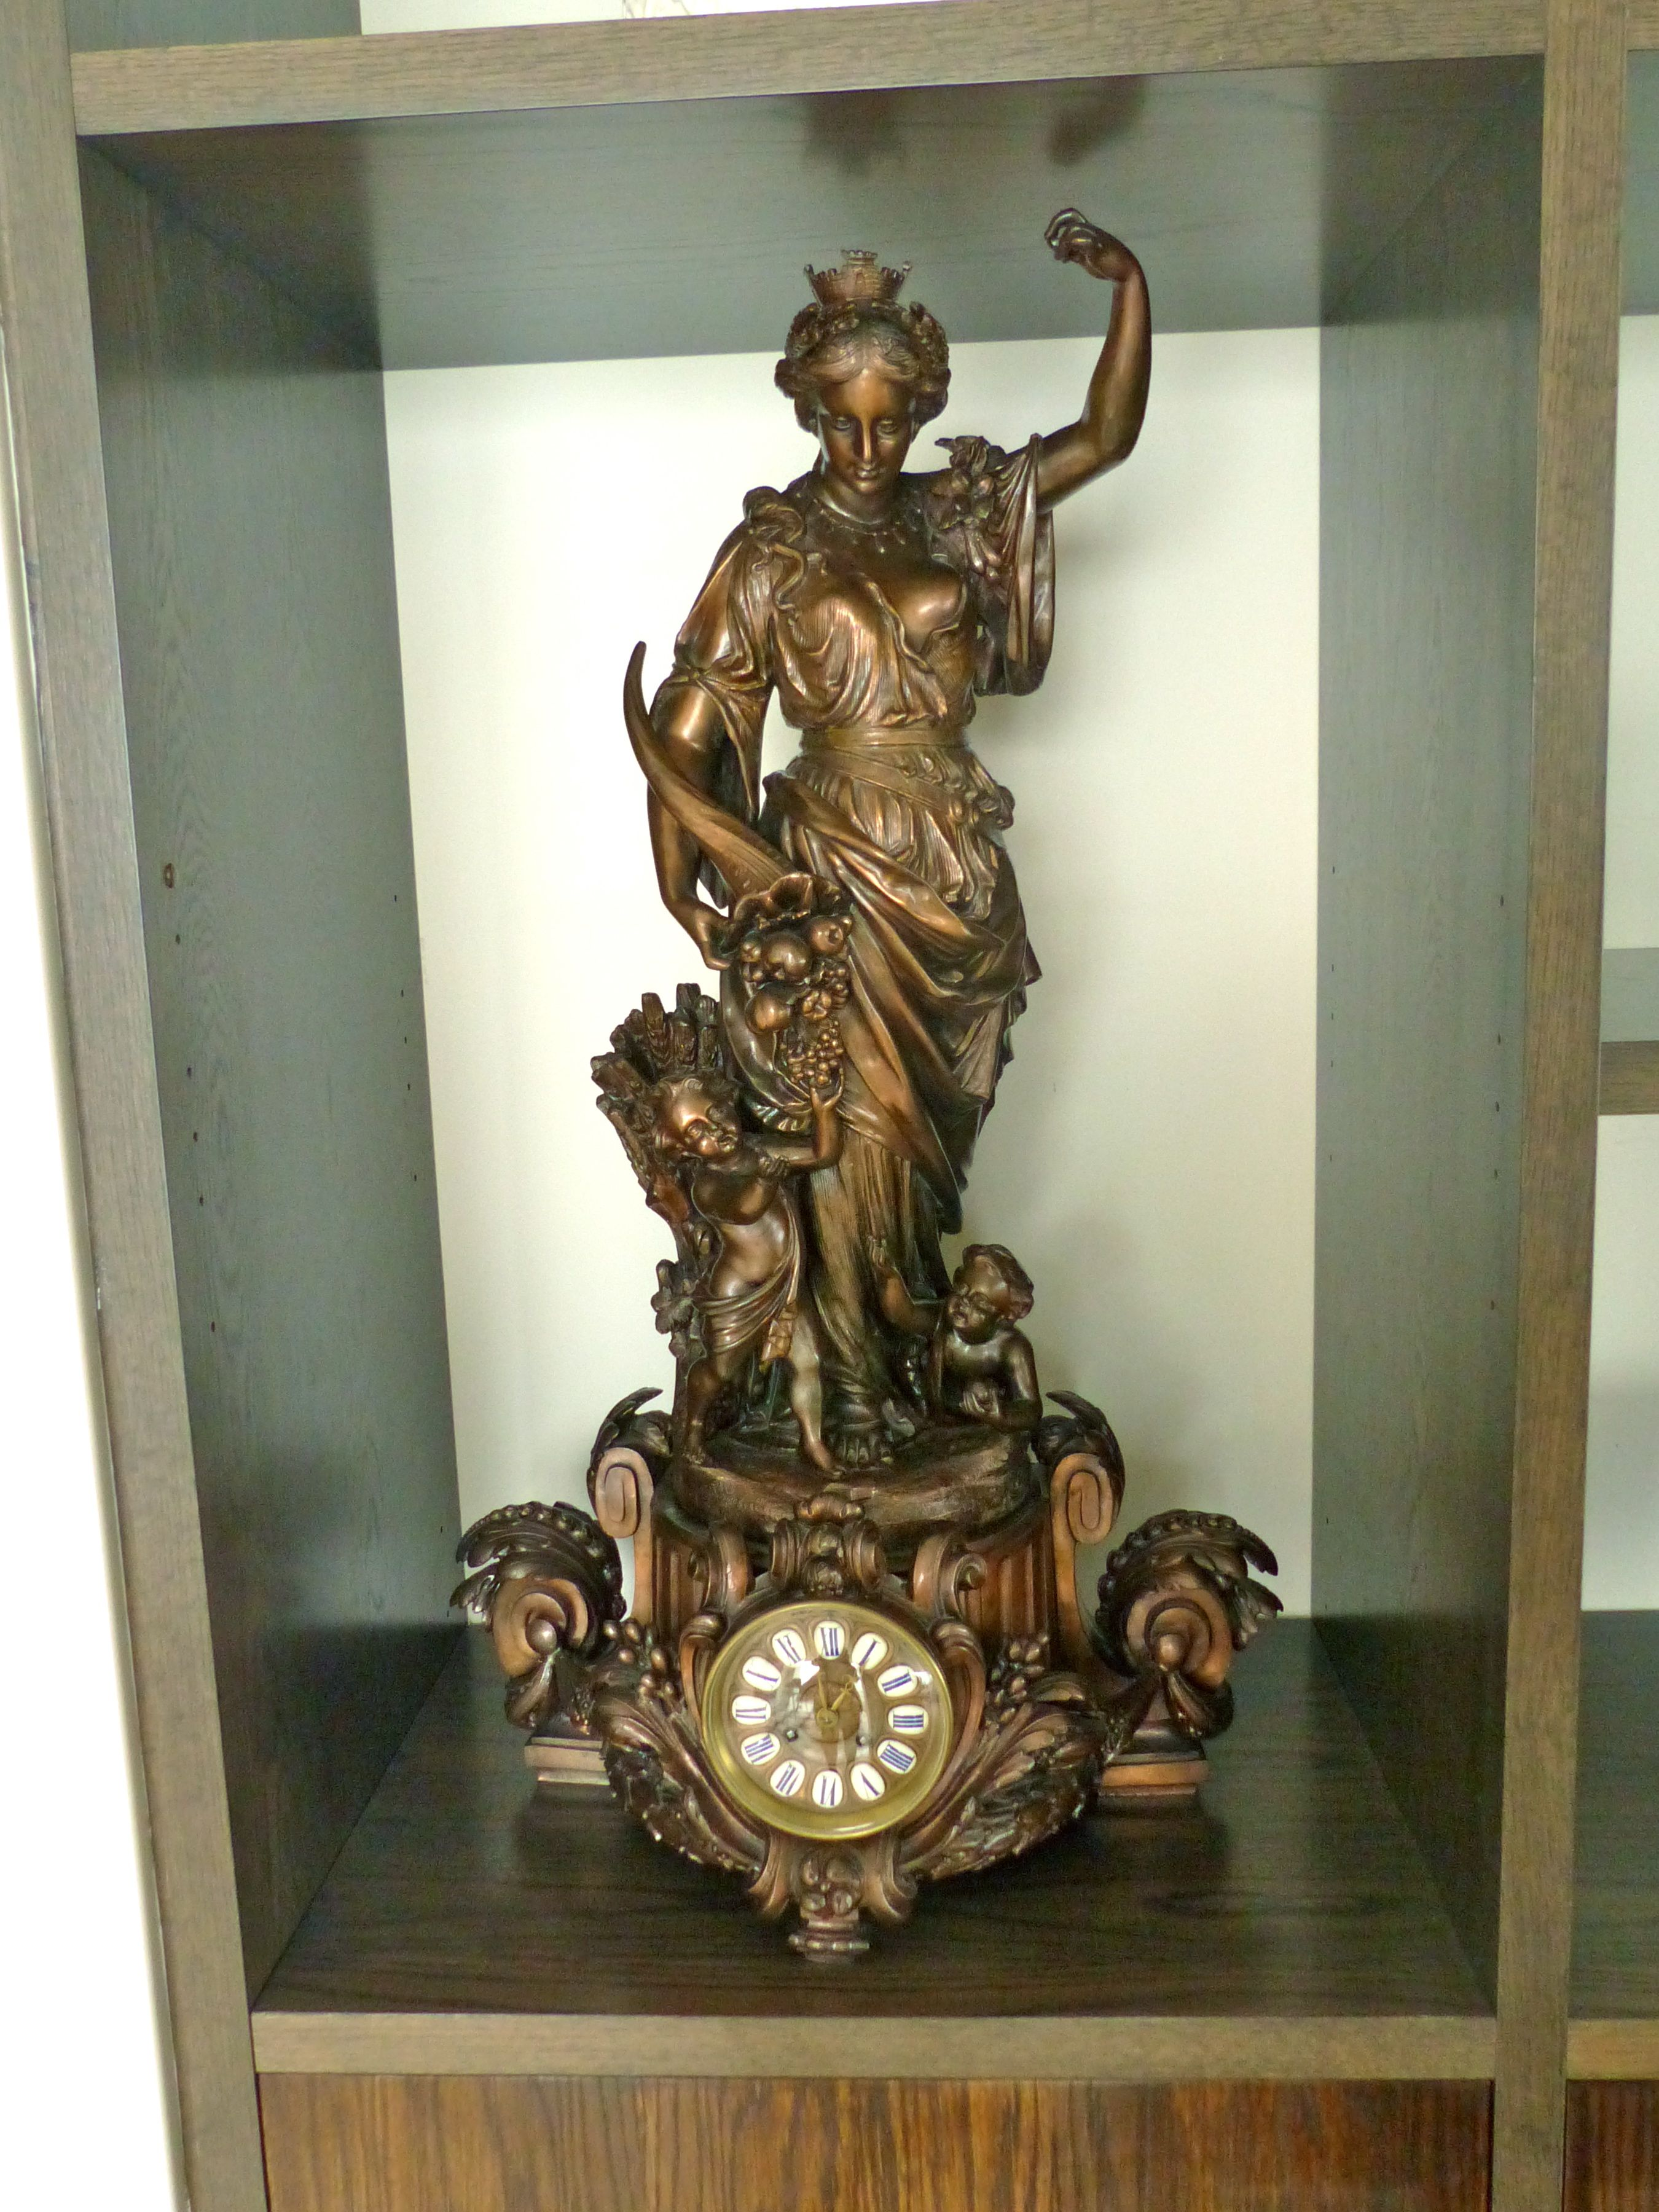 Parisian Antique clock from 1890